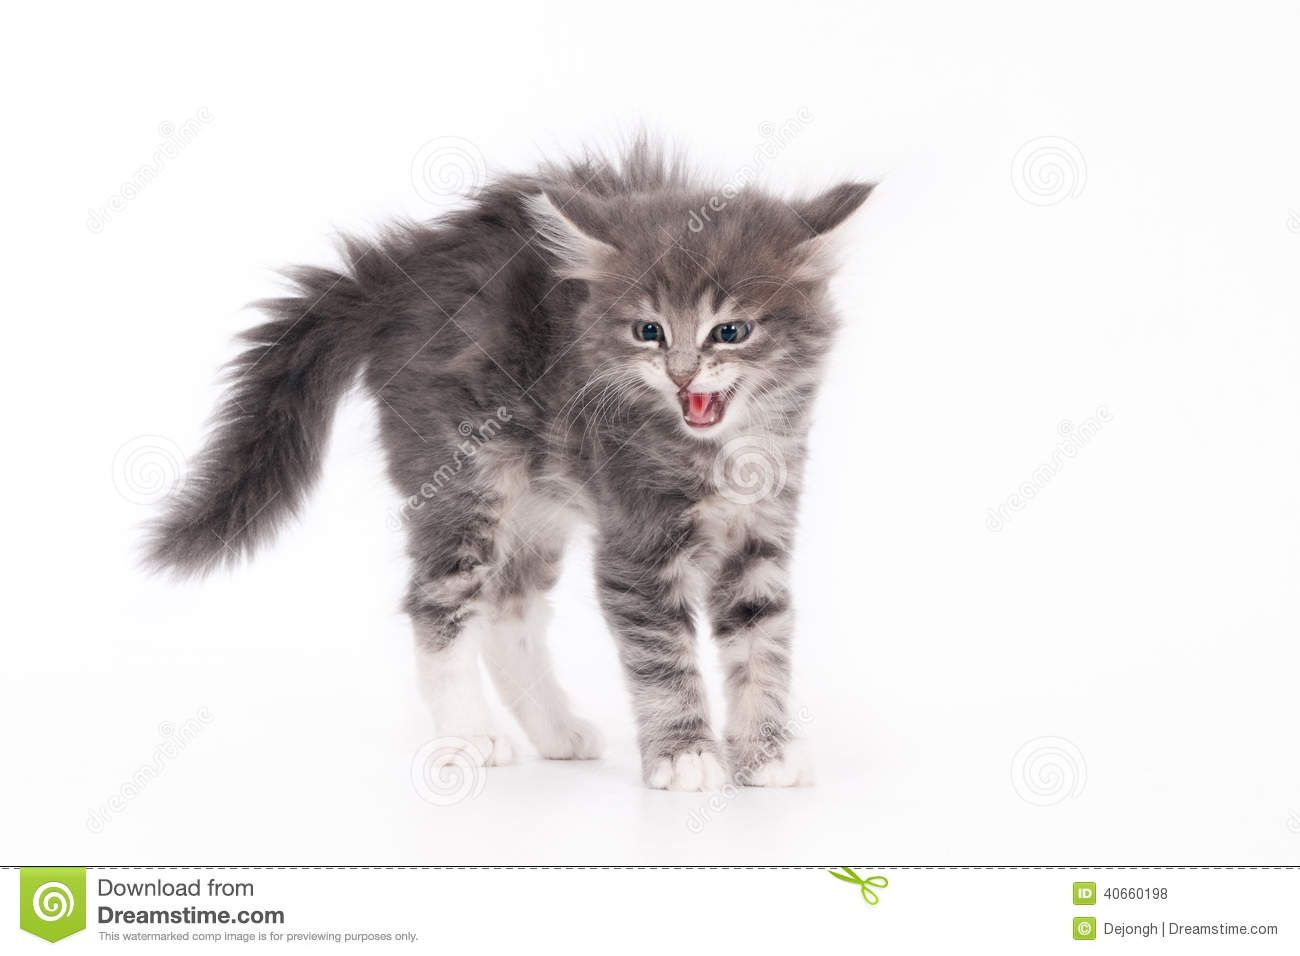 How To Draw Kittens Google Search Cats All About Cats Cat Pose